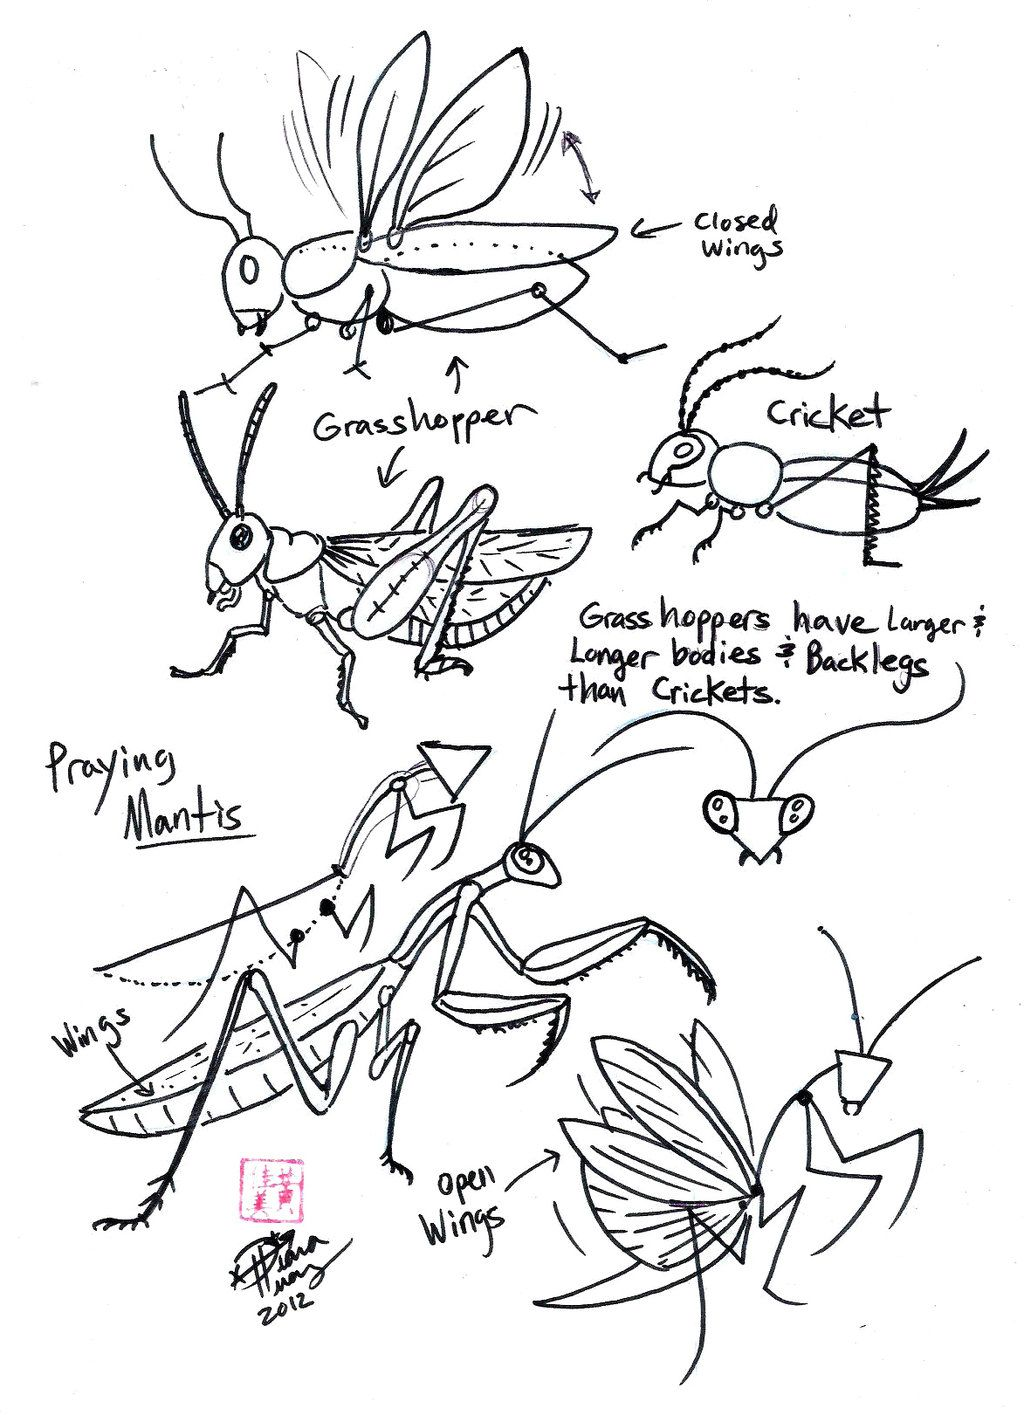 Draw Grasshopper Cricket And Praying Mantis By Diana